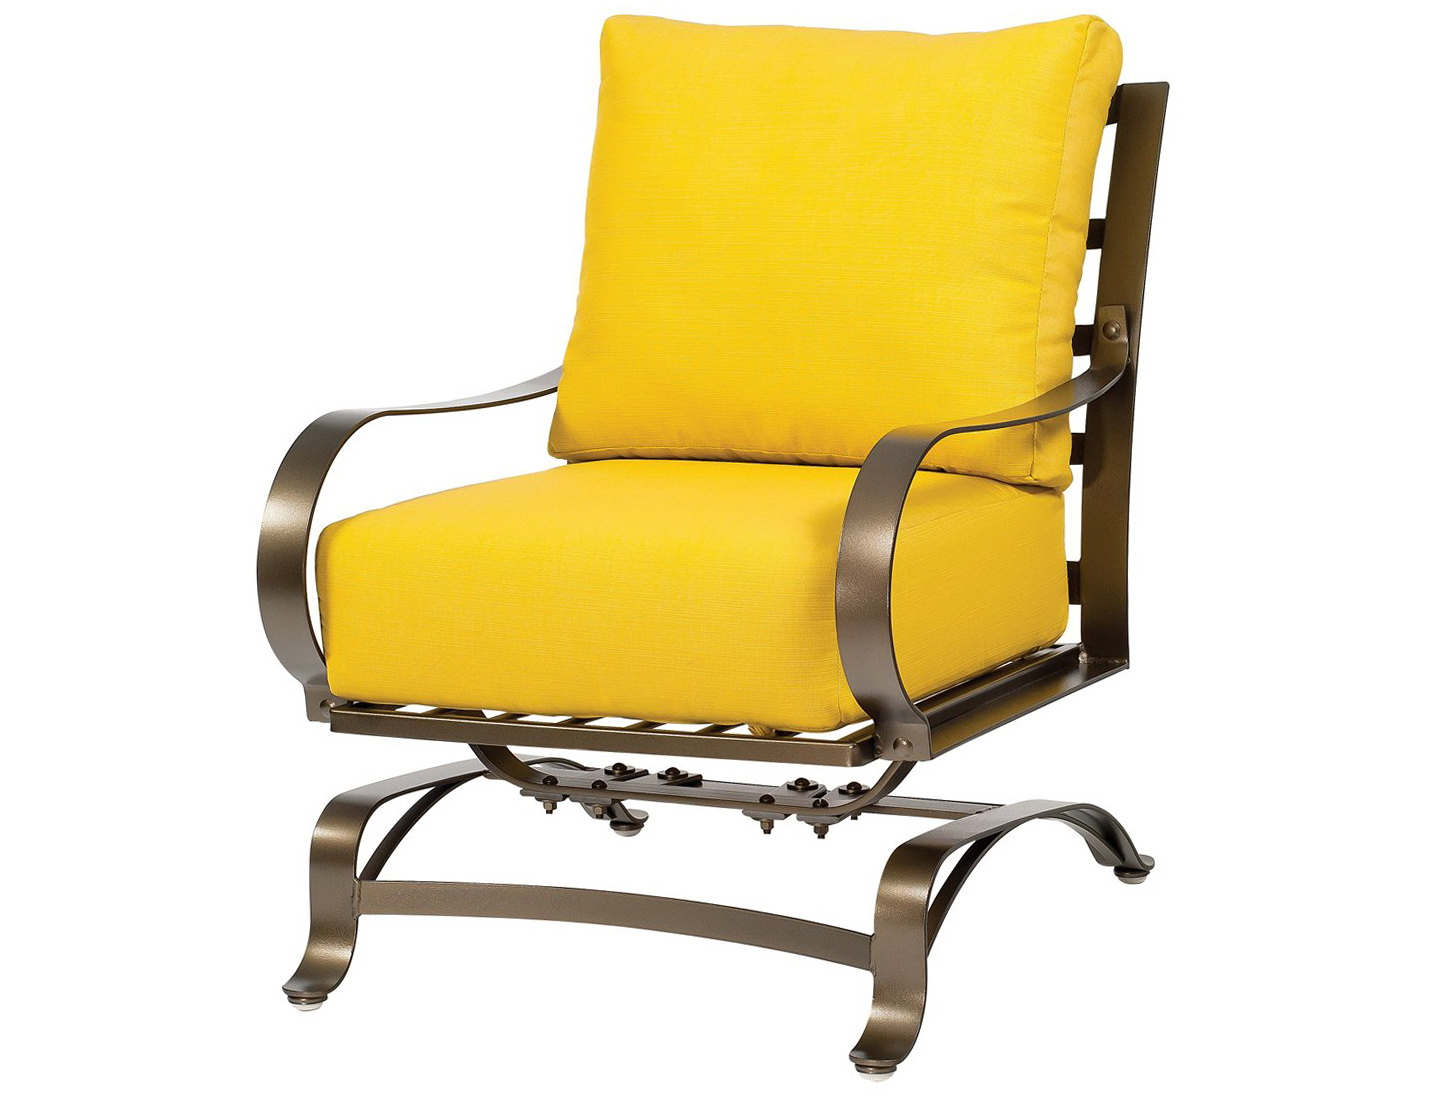 Patio Chair Replacement Cushions Clearance Home Design Ideas